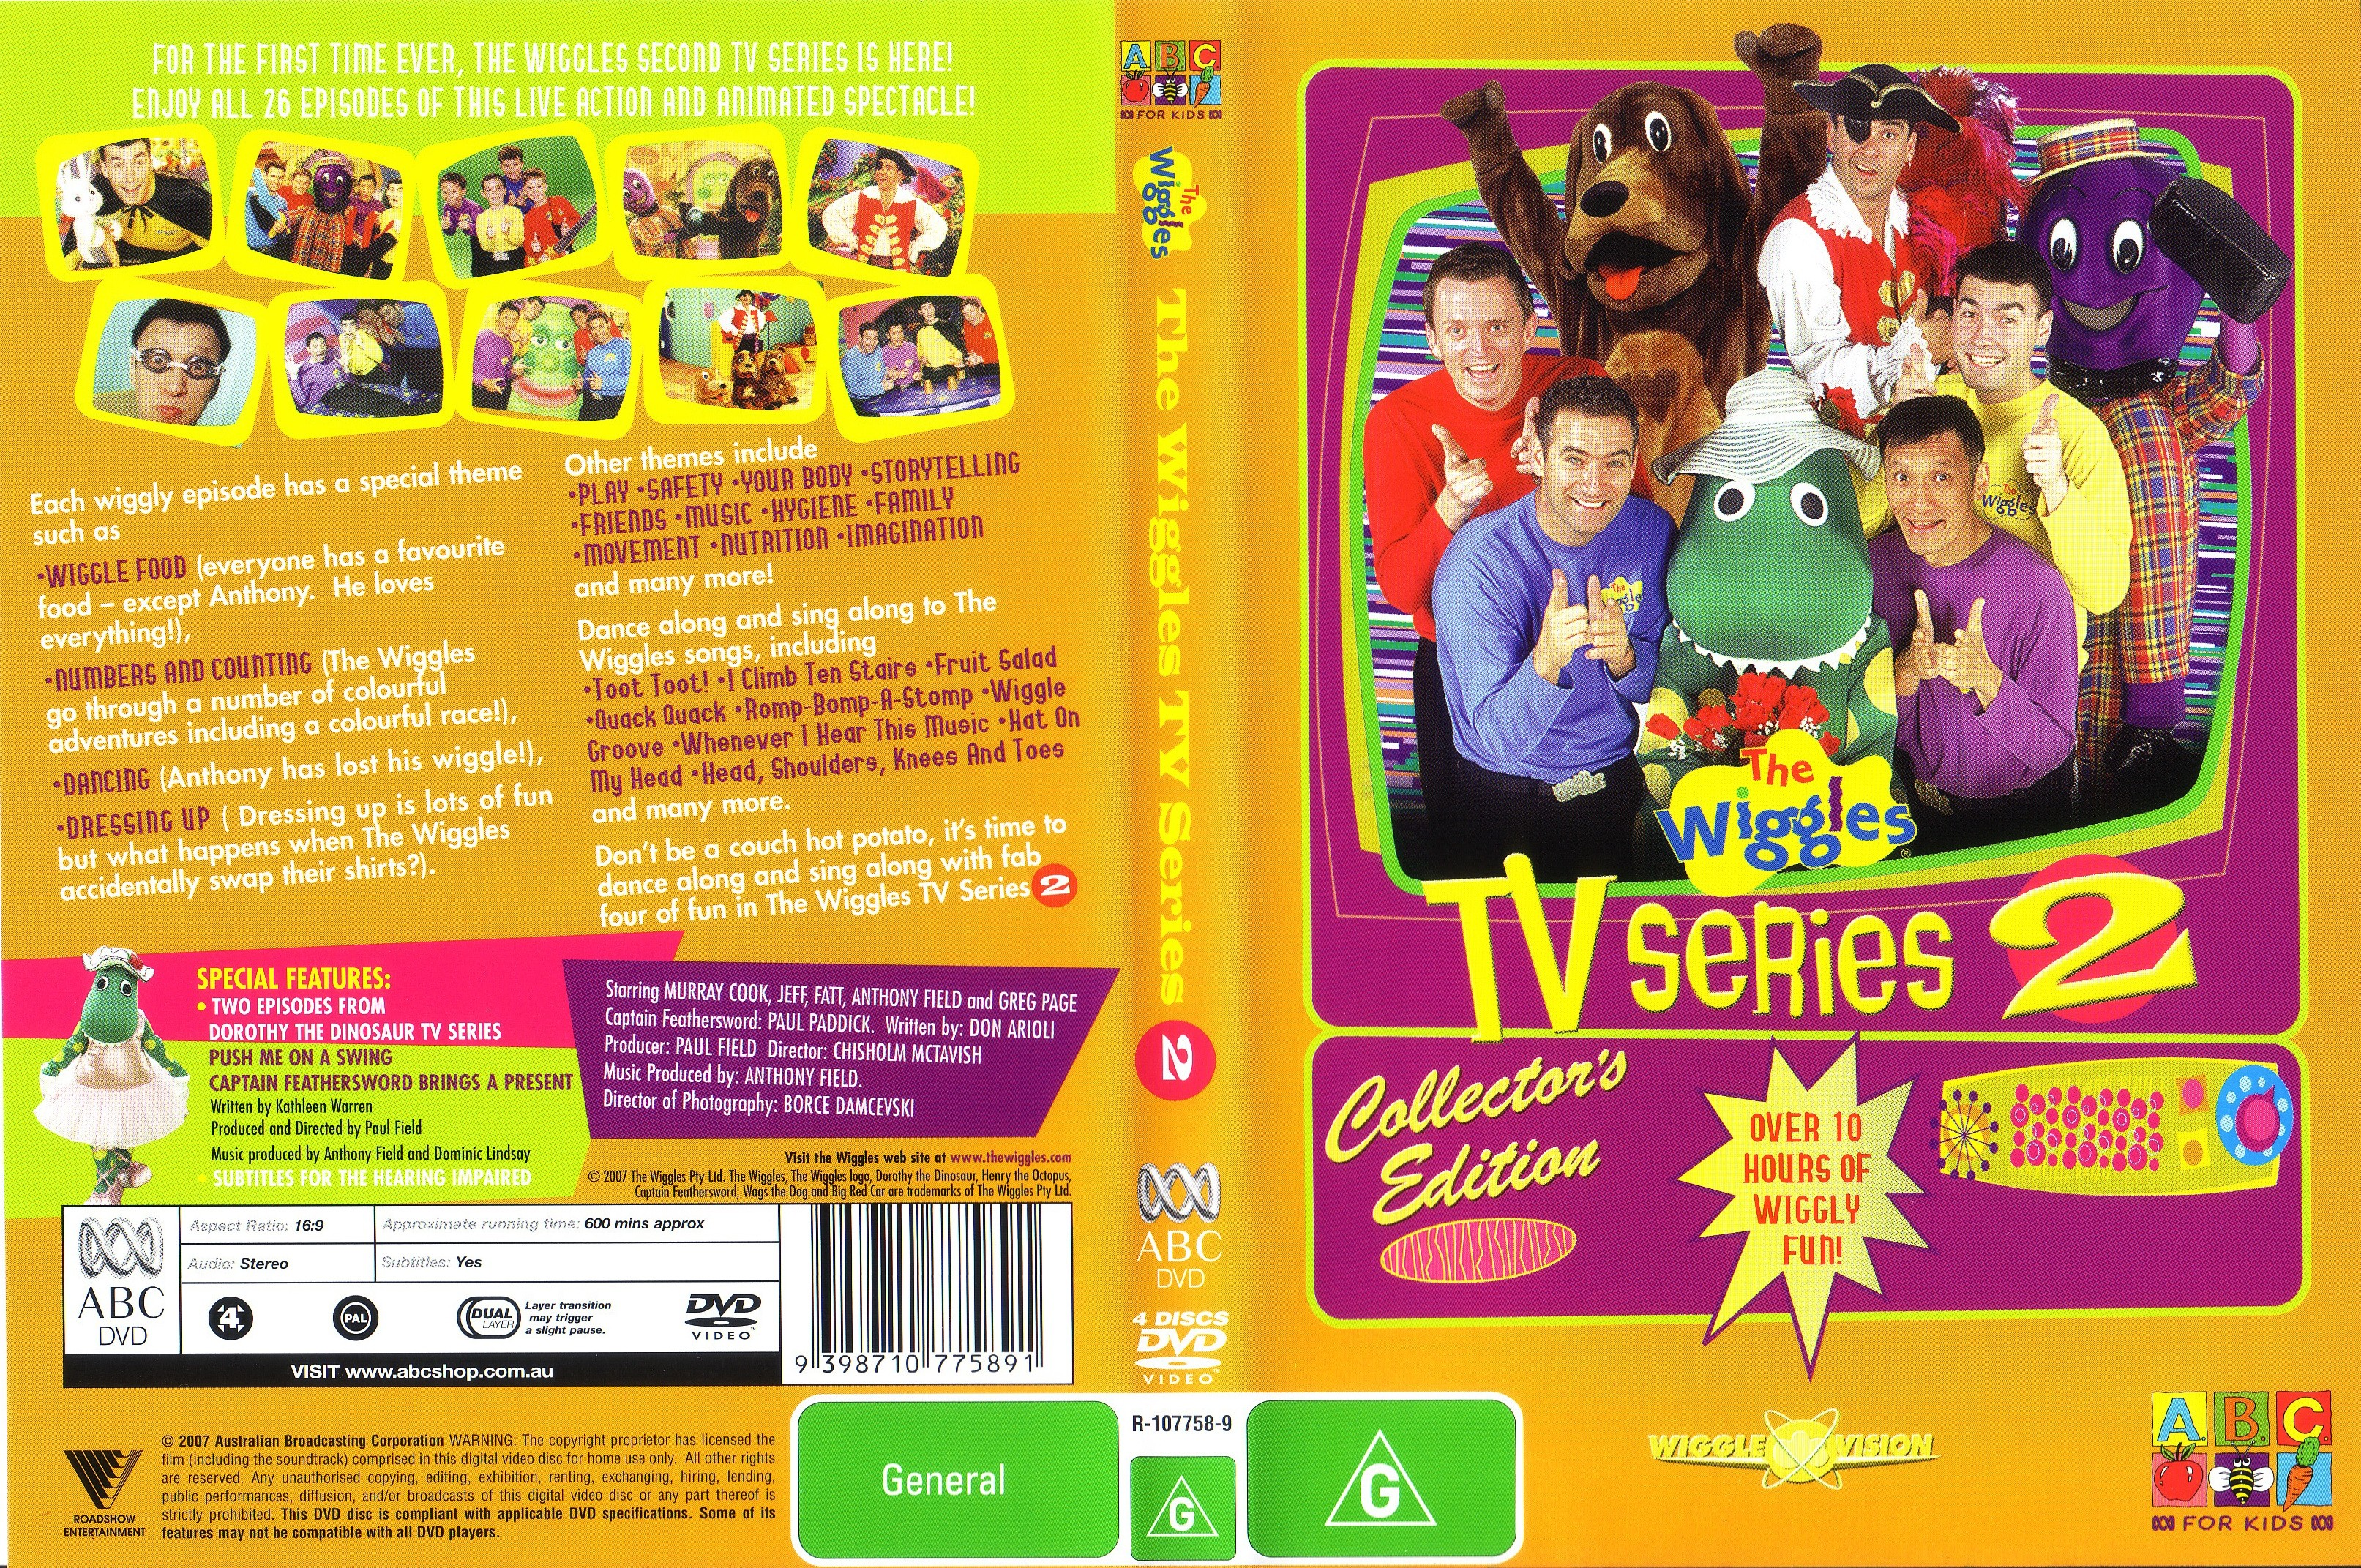 TV Series 2 Collector's Edition